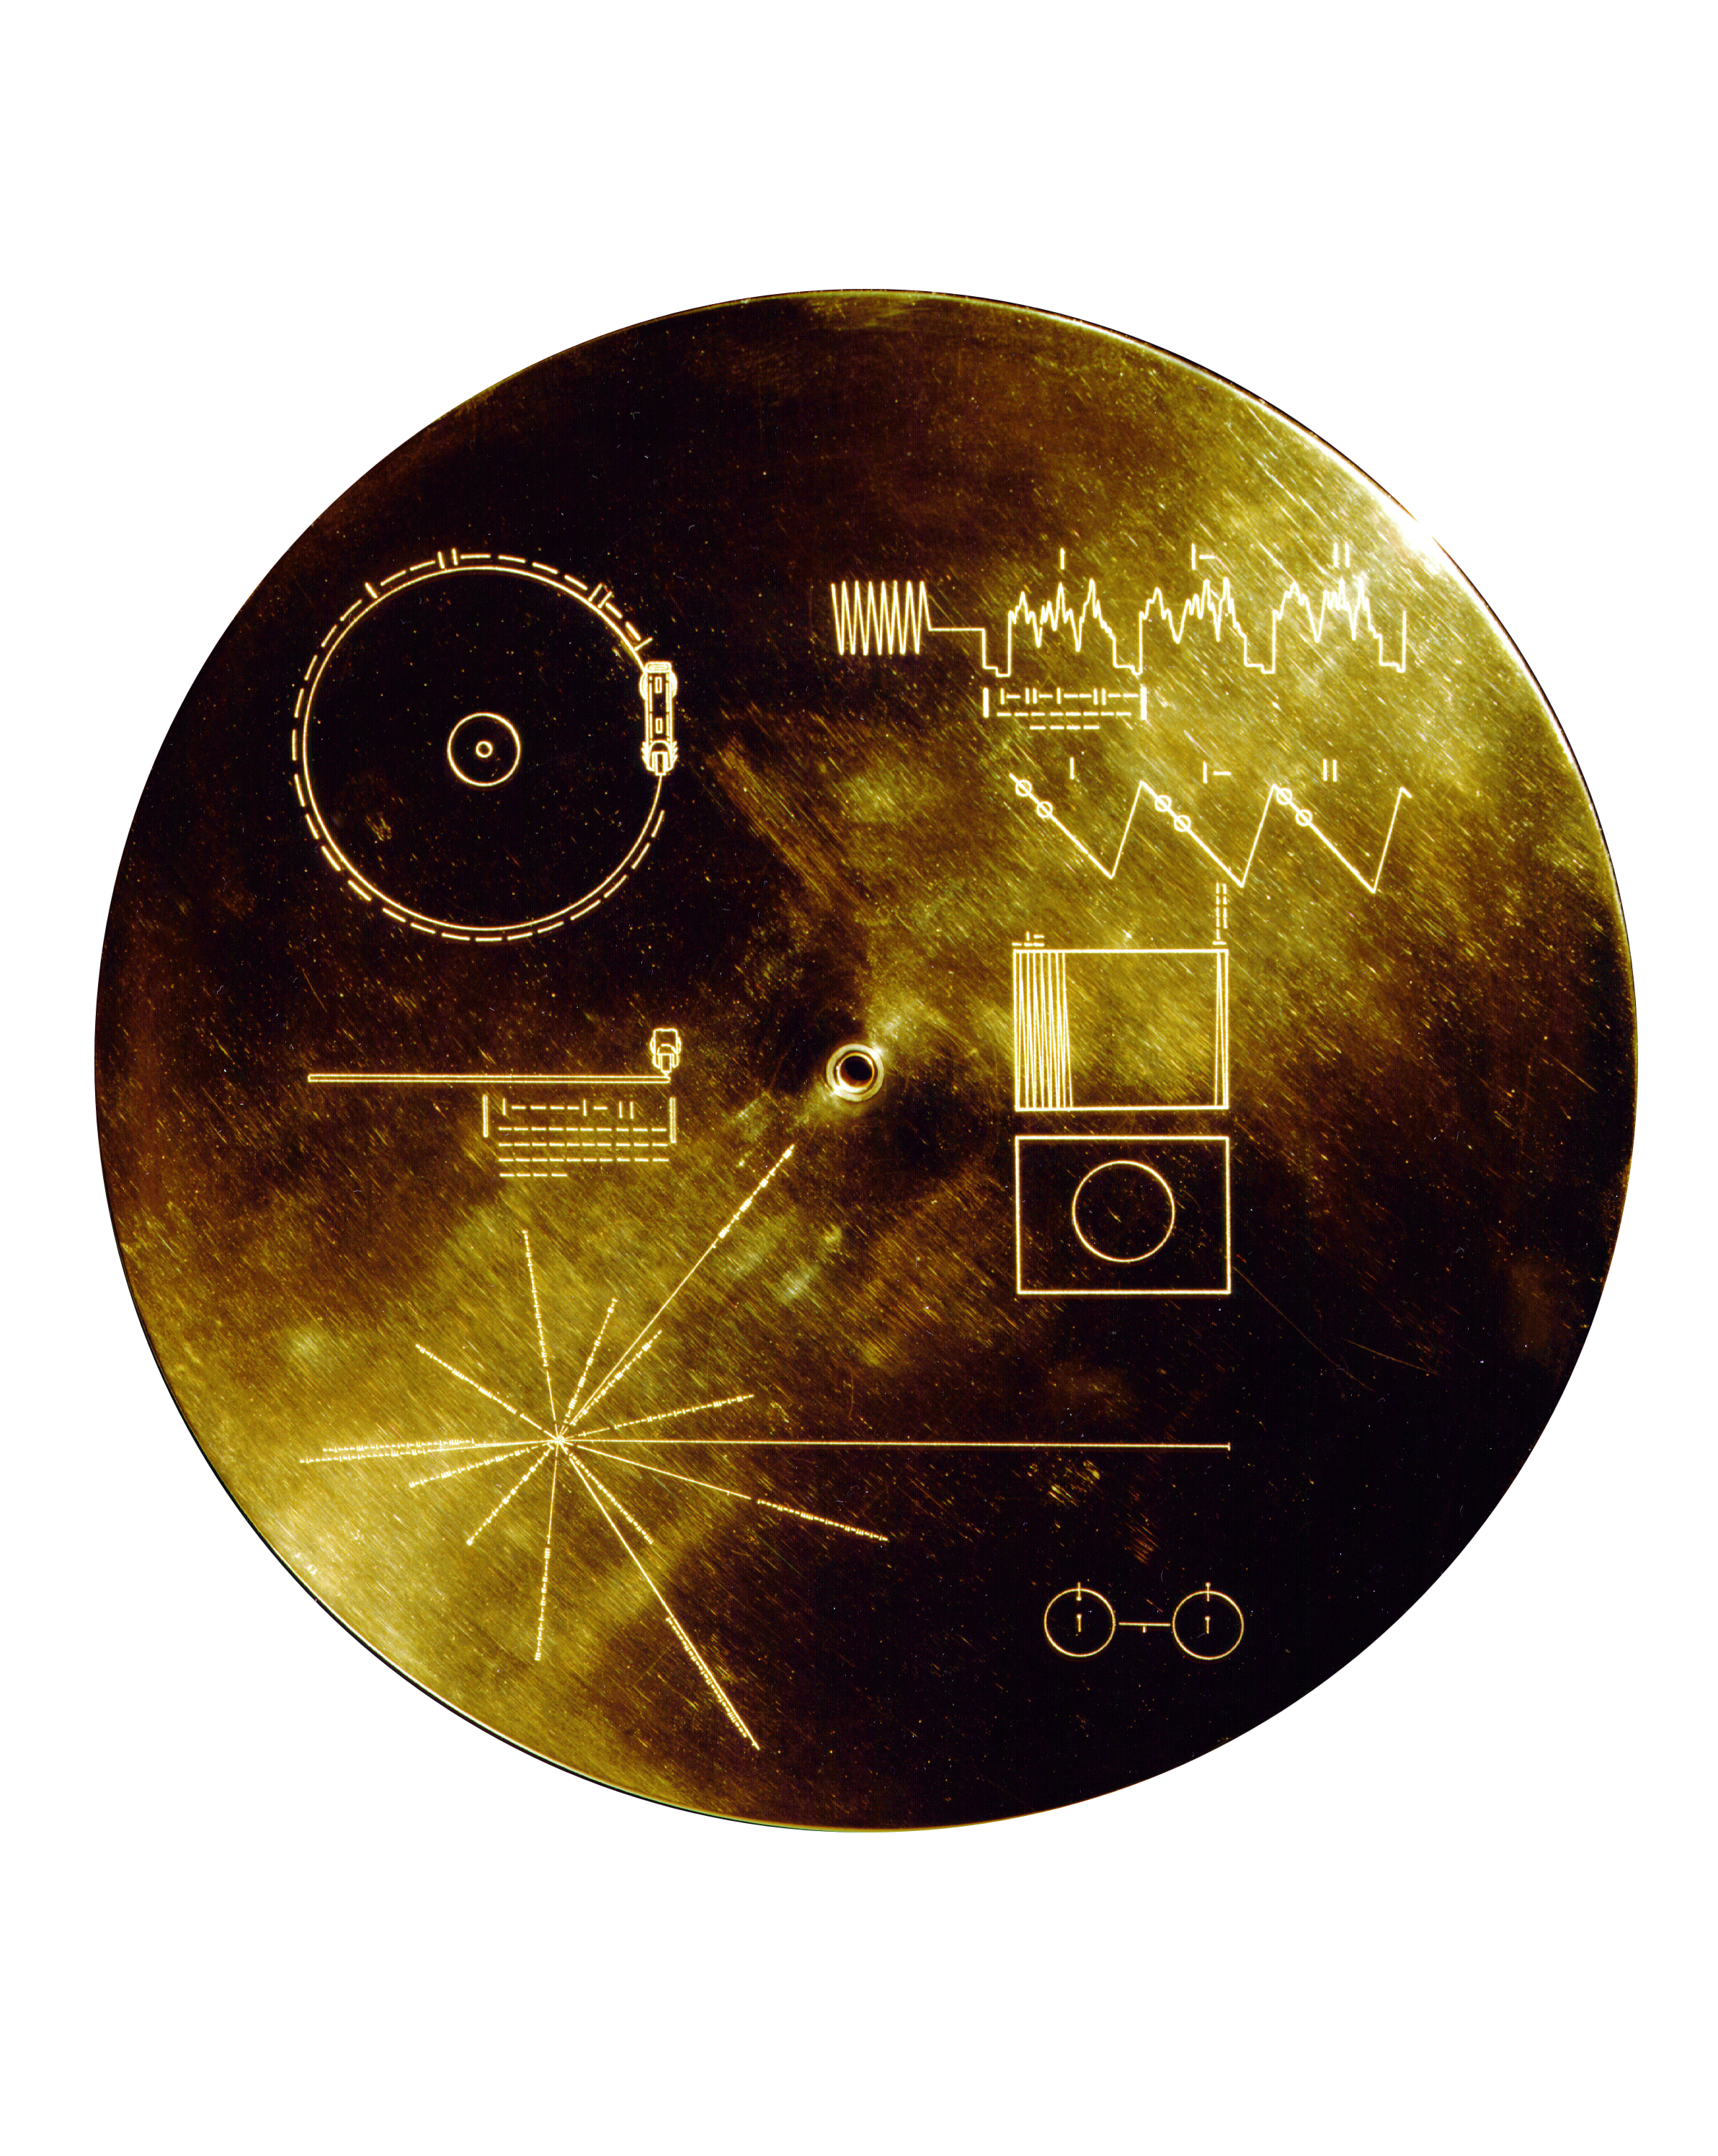 Voyager Golden Record Fx Png 2384 2992 Voyager Golden Record Voyager Spacecraft Space Exploration